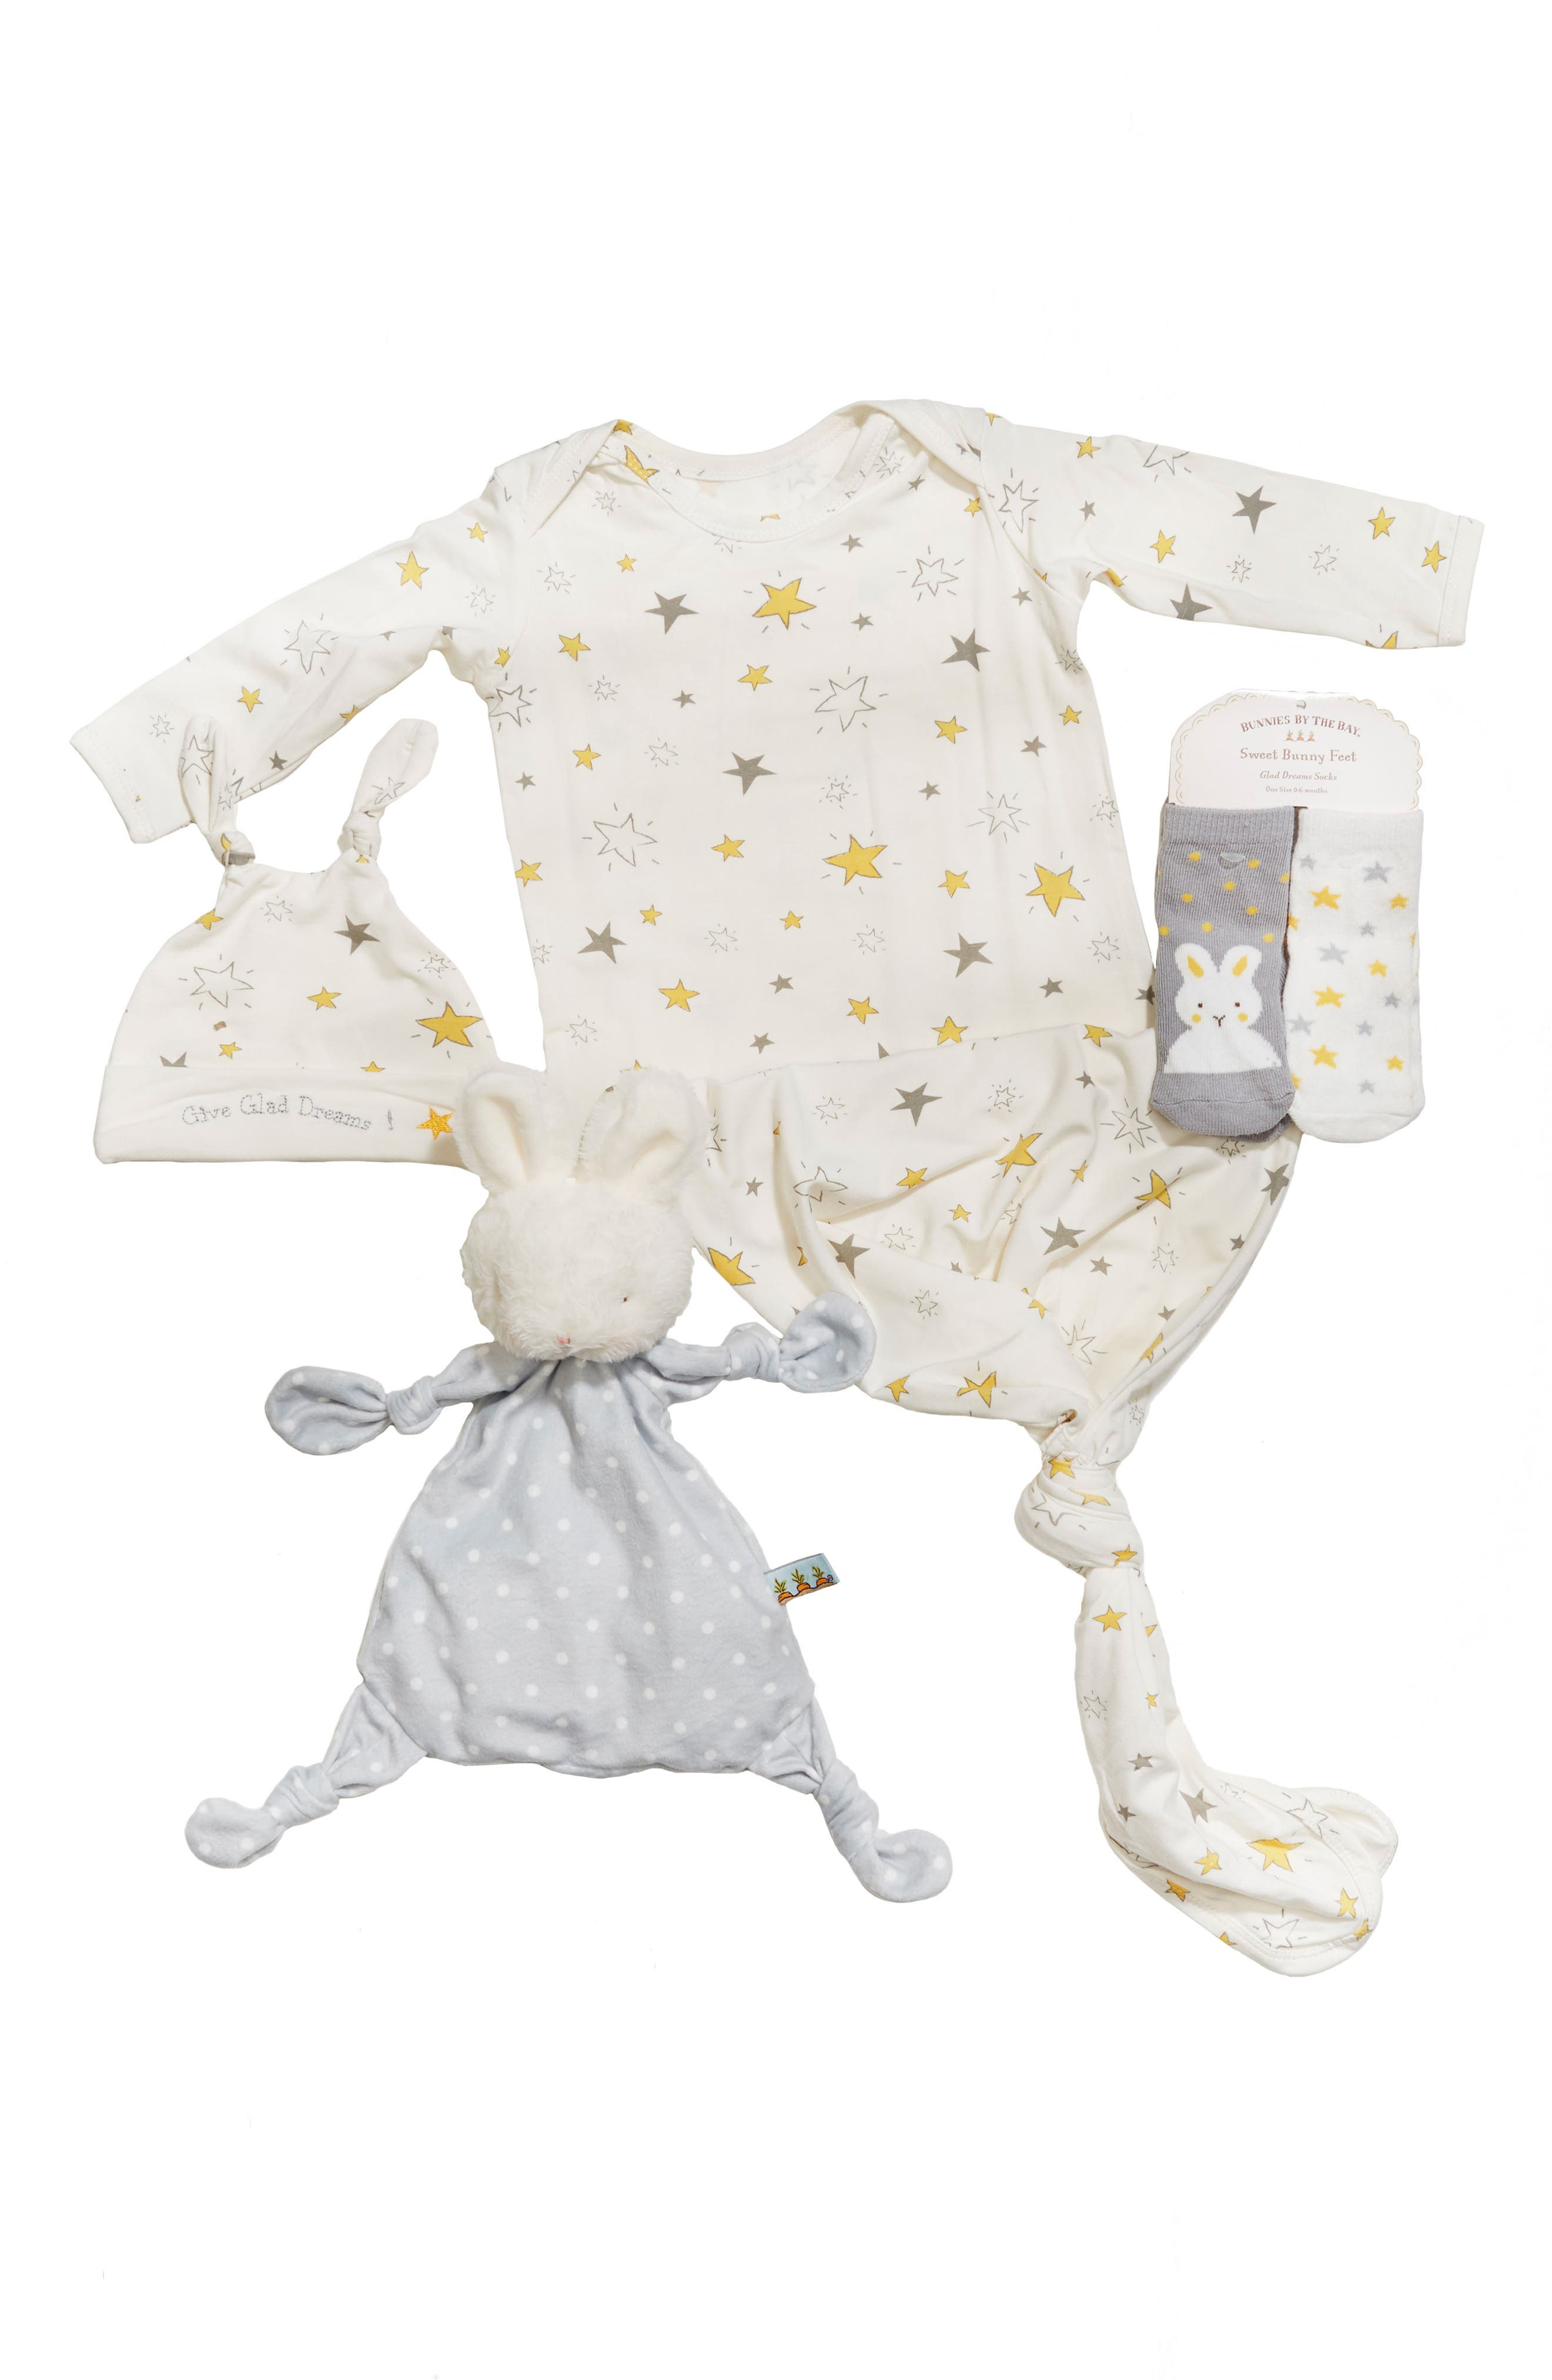 Main Image - Bunnies By The Bay Gown, Hat, Socks & Lovey Set (Baby)